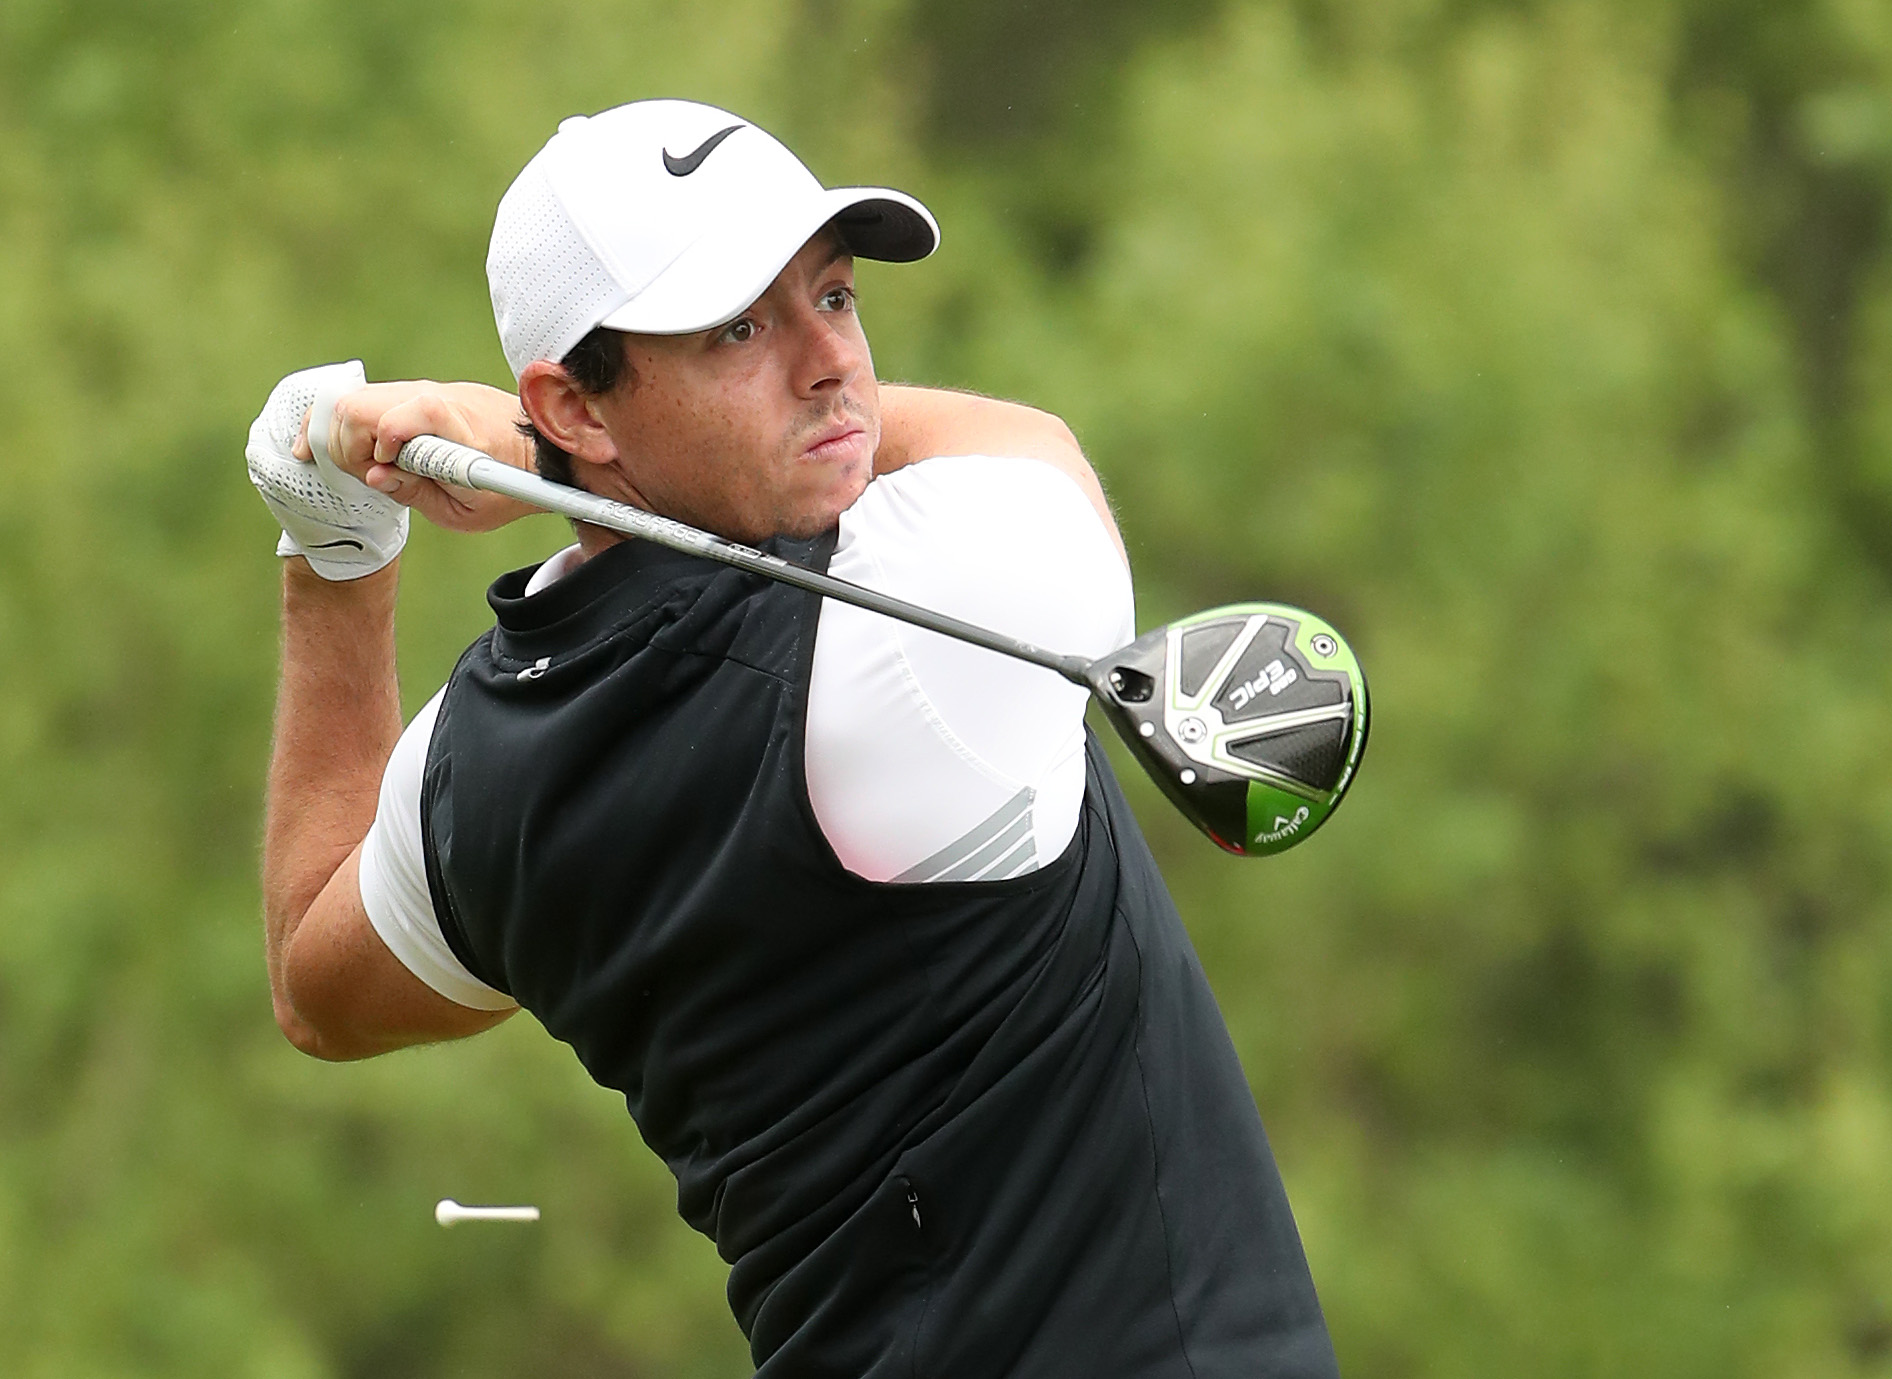 Rory McIlroy finished 1-1-1 in the round robin at this year's Match Play.